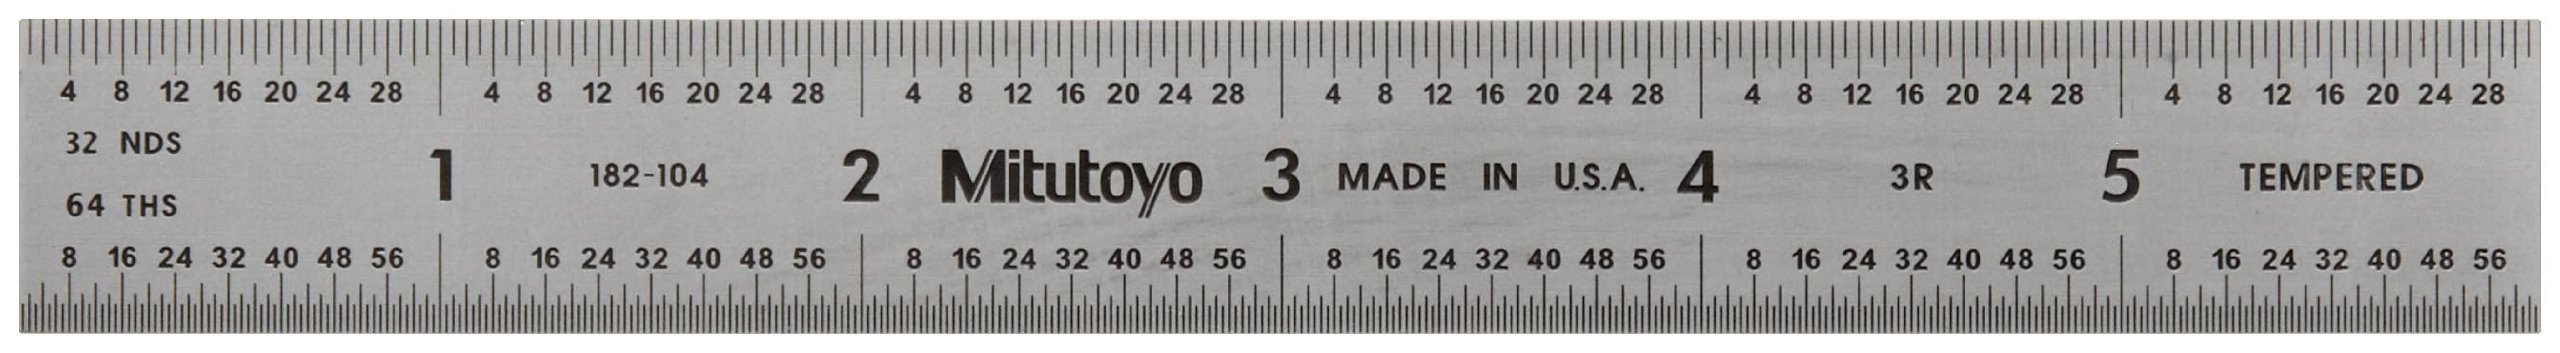 Mitutoyo 182-104, Steel Rule, 6'' (3R), (1/32, 1/64, 1/10, 1/50''), 3/64'' Thick X 3/4'' Wide, Satin Chrome Finish Tempered Stainless Steel